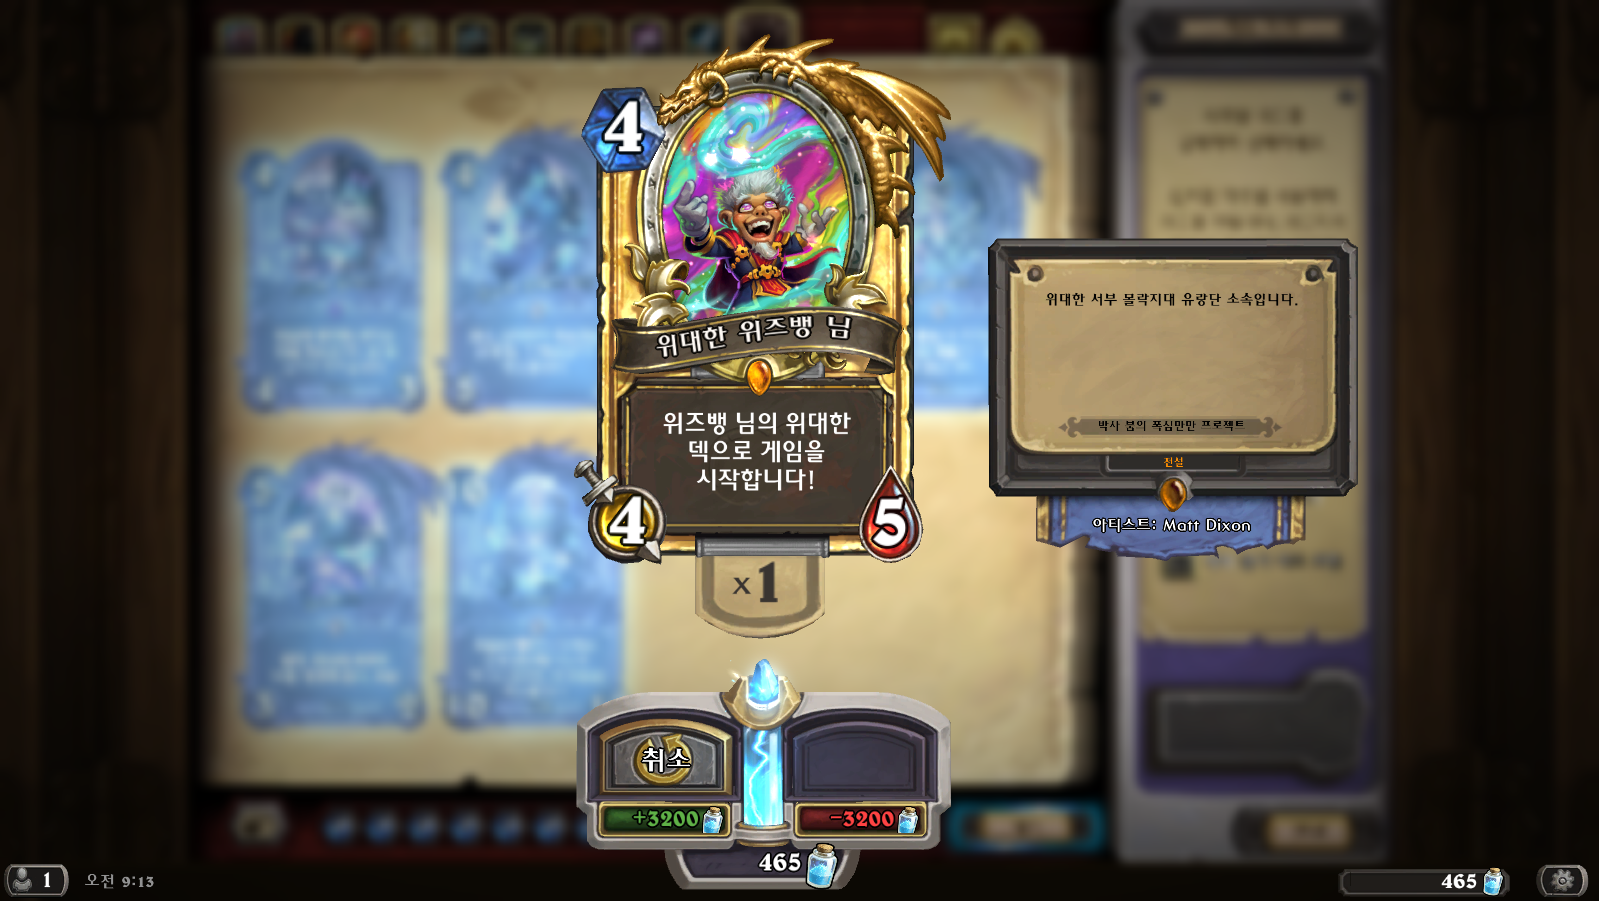 Hearthstone Screenshot 08-08-18 09.13.06.png